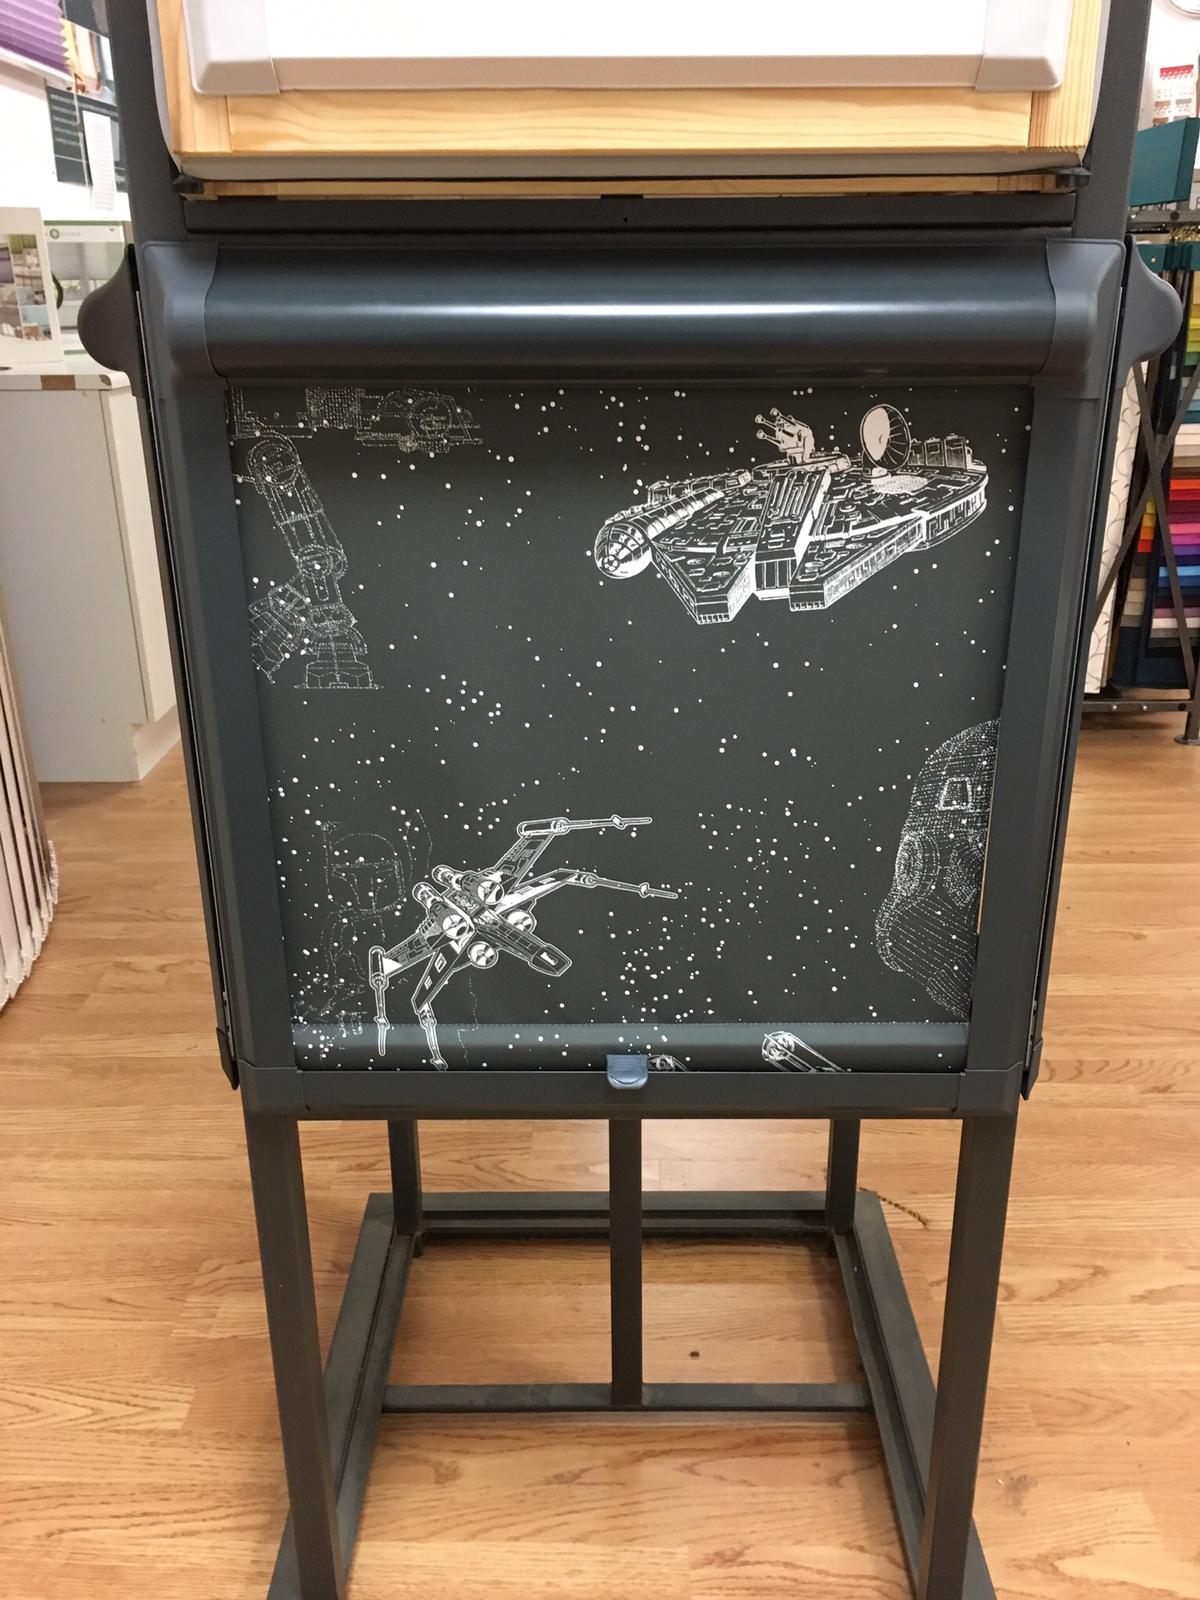 New Star Wars fabric in a anthracite perfect fit frame